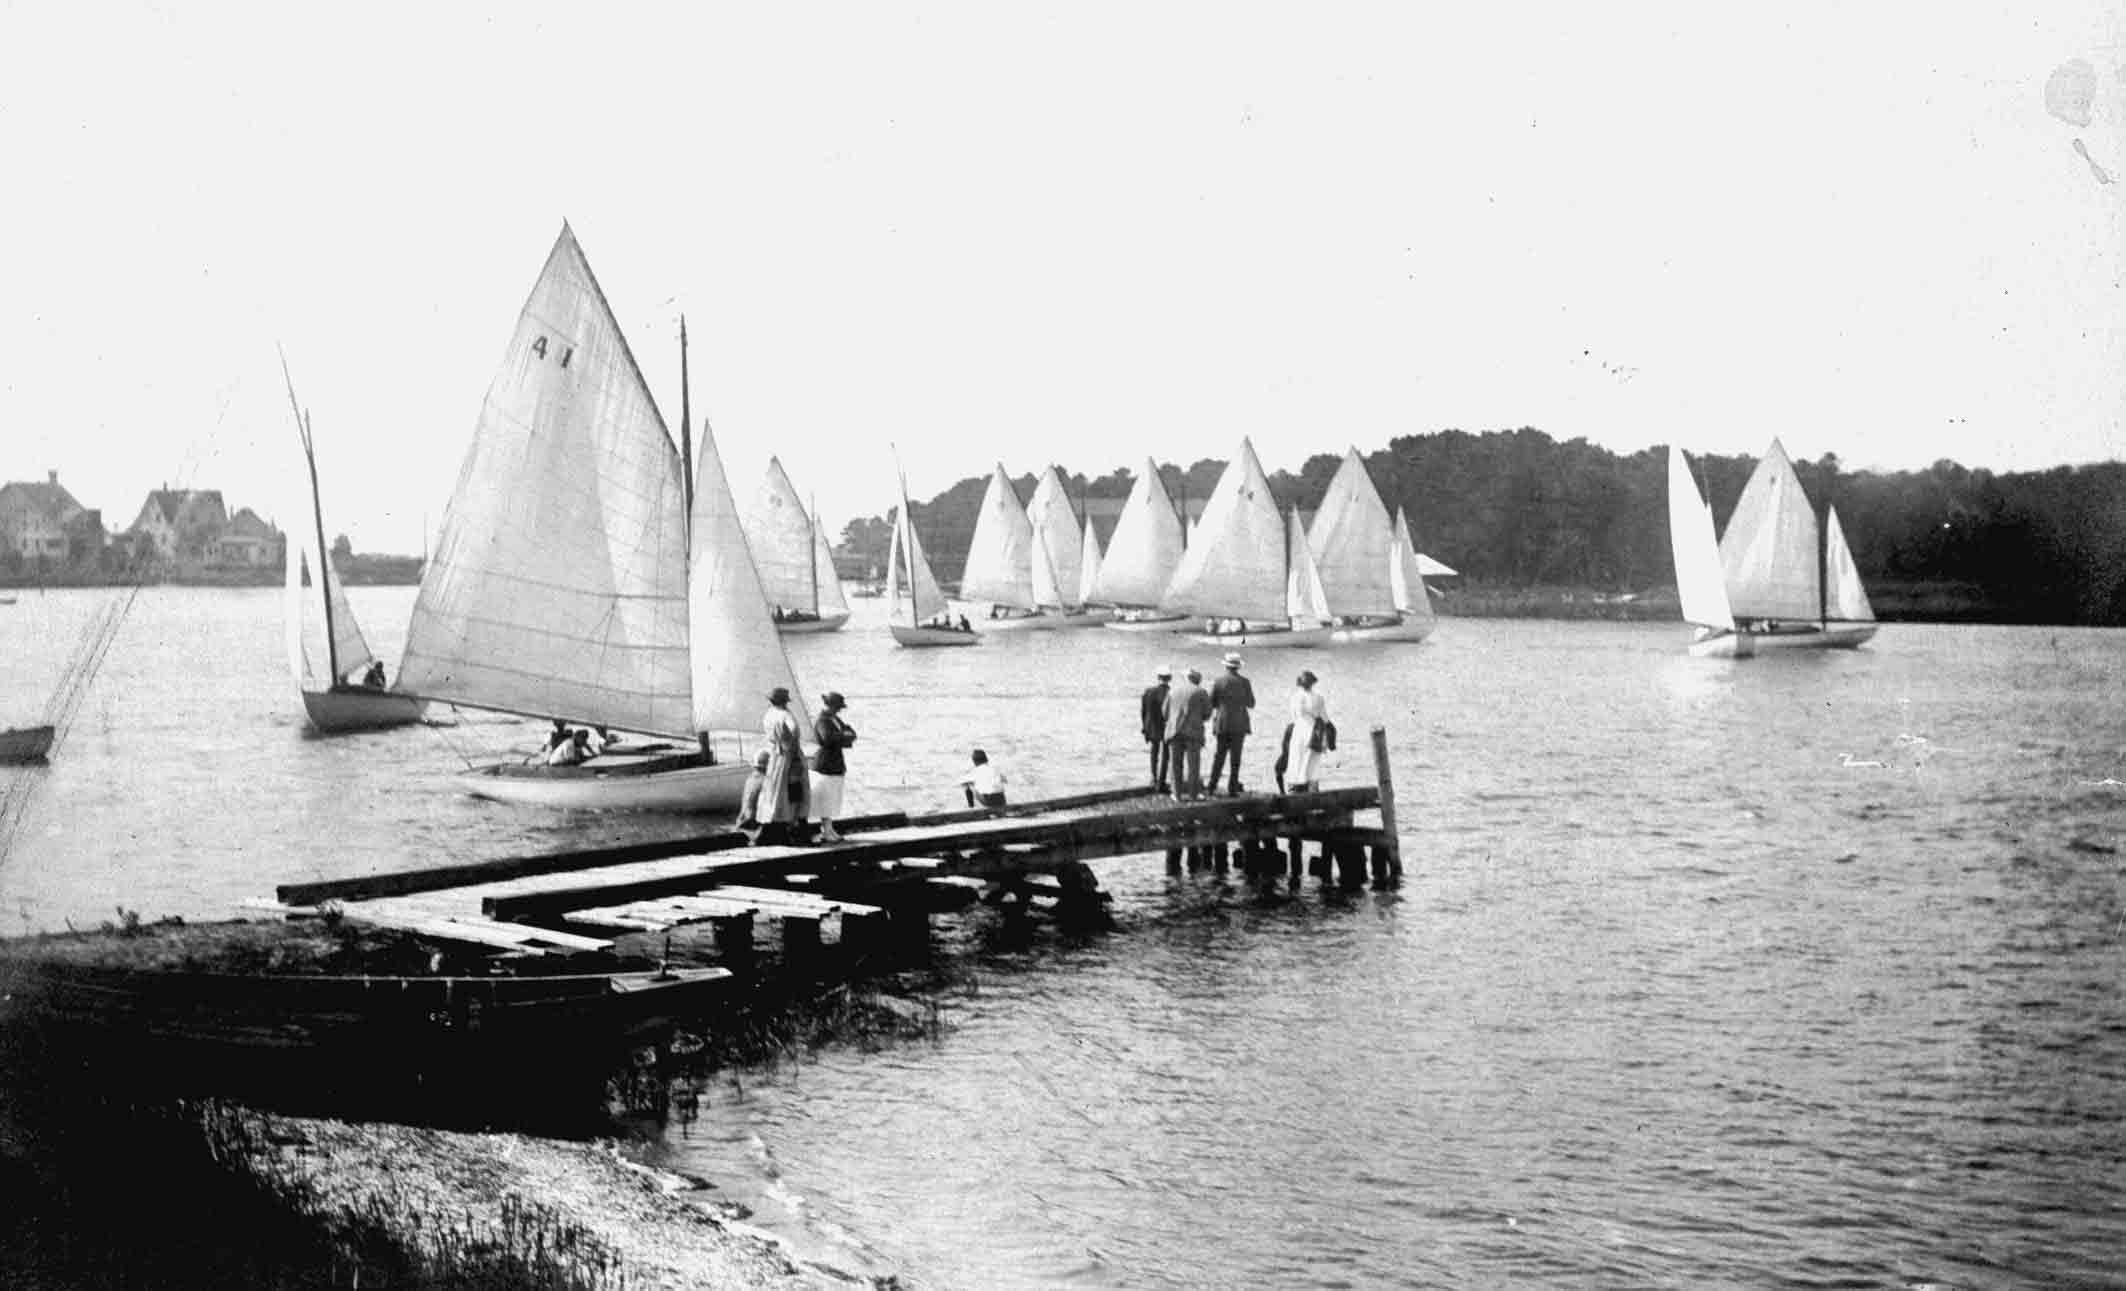 The Wooden Boat Legacy | Osterville Historical Museum-Cape Cod